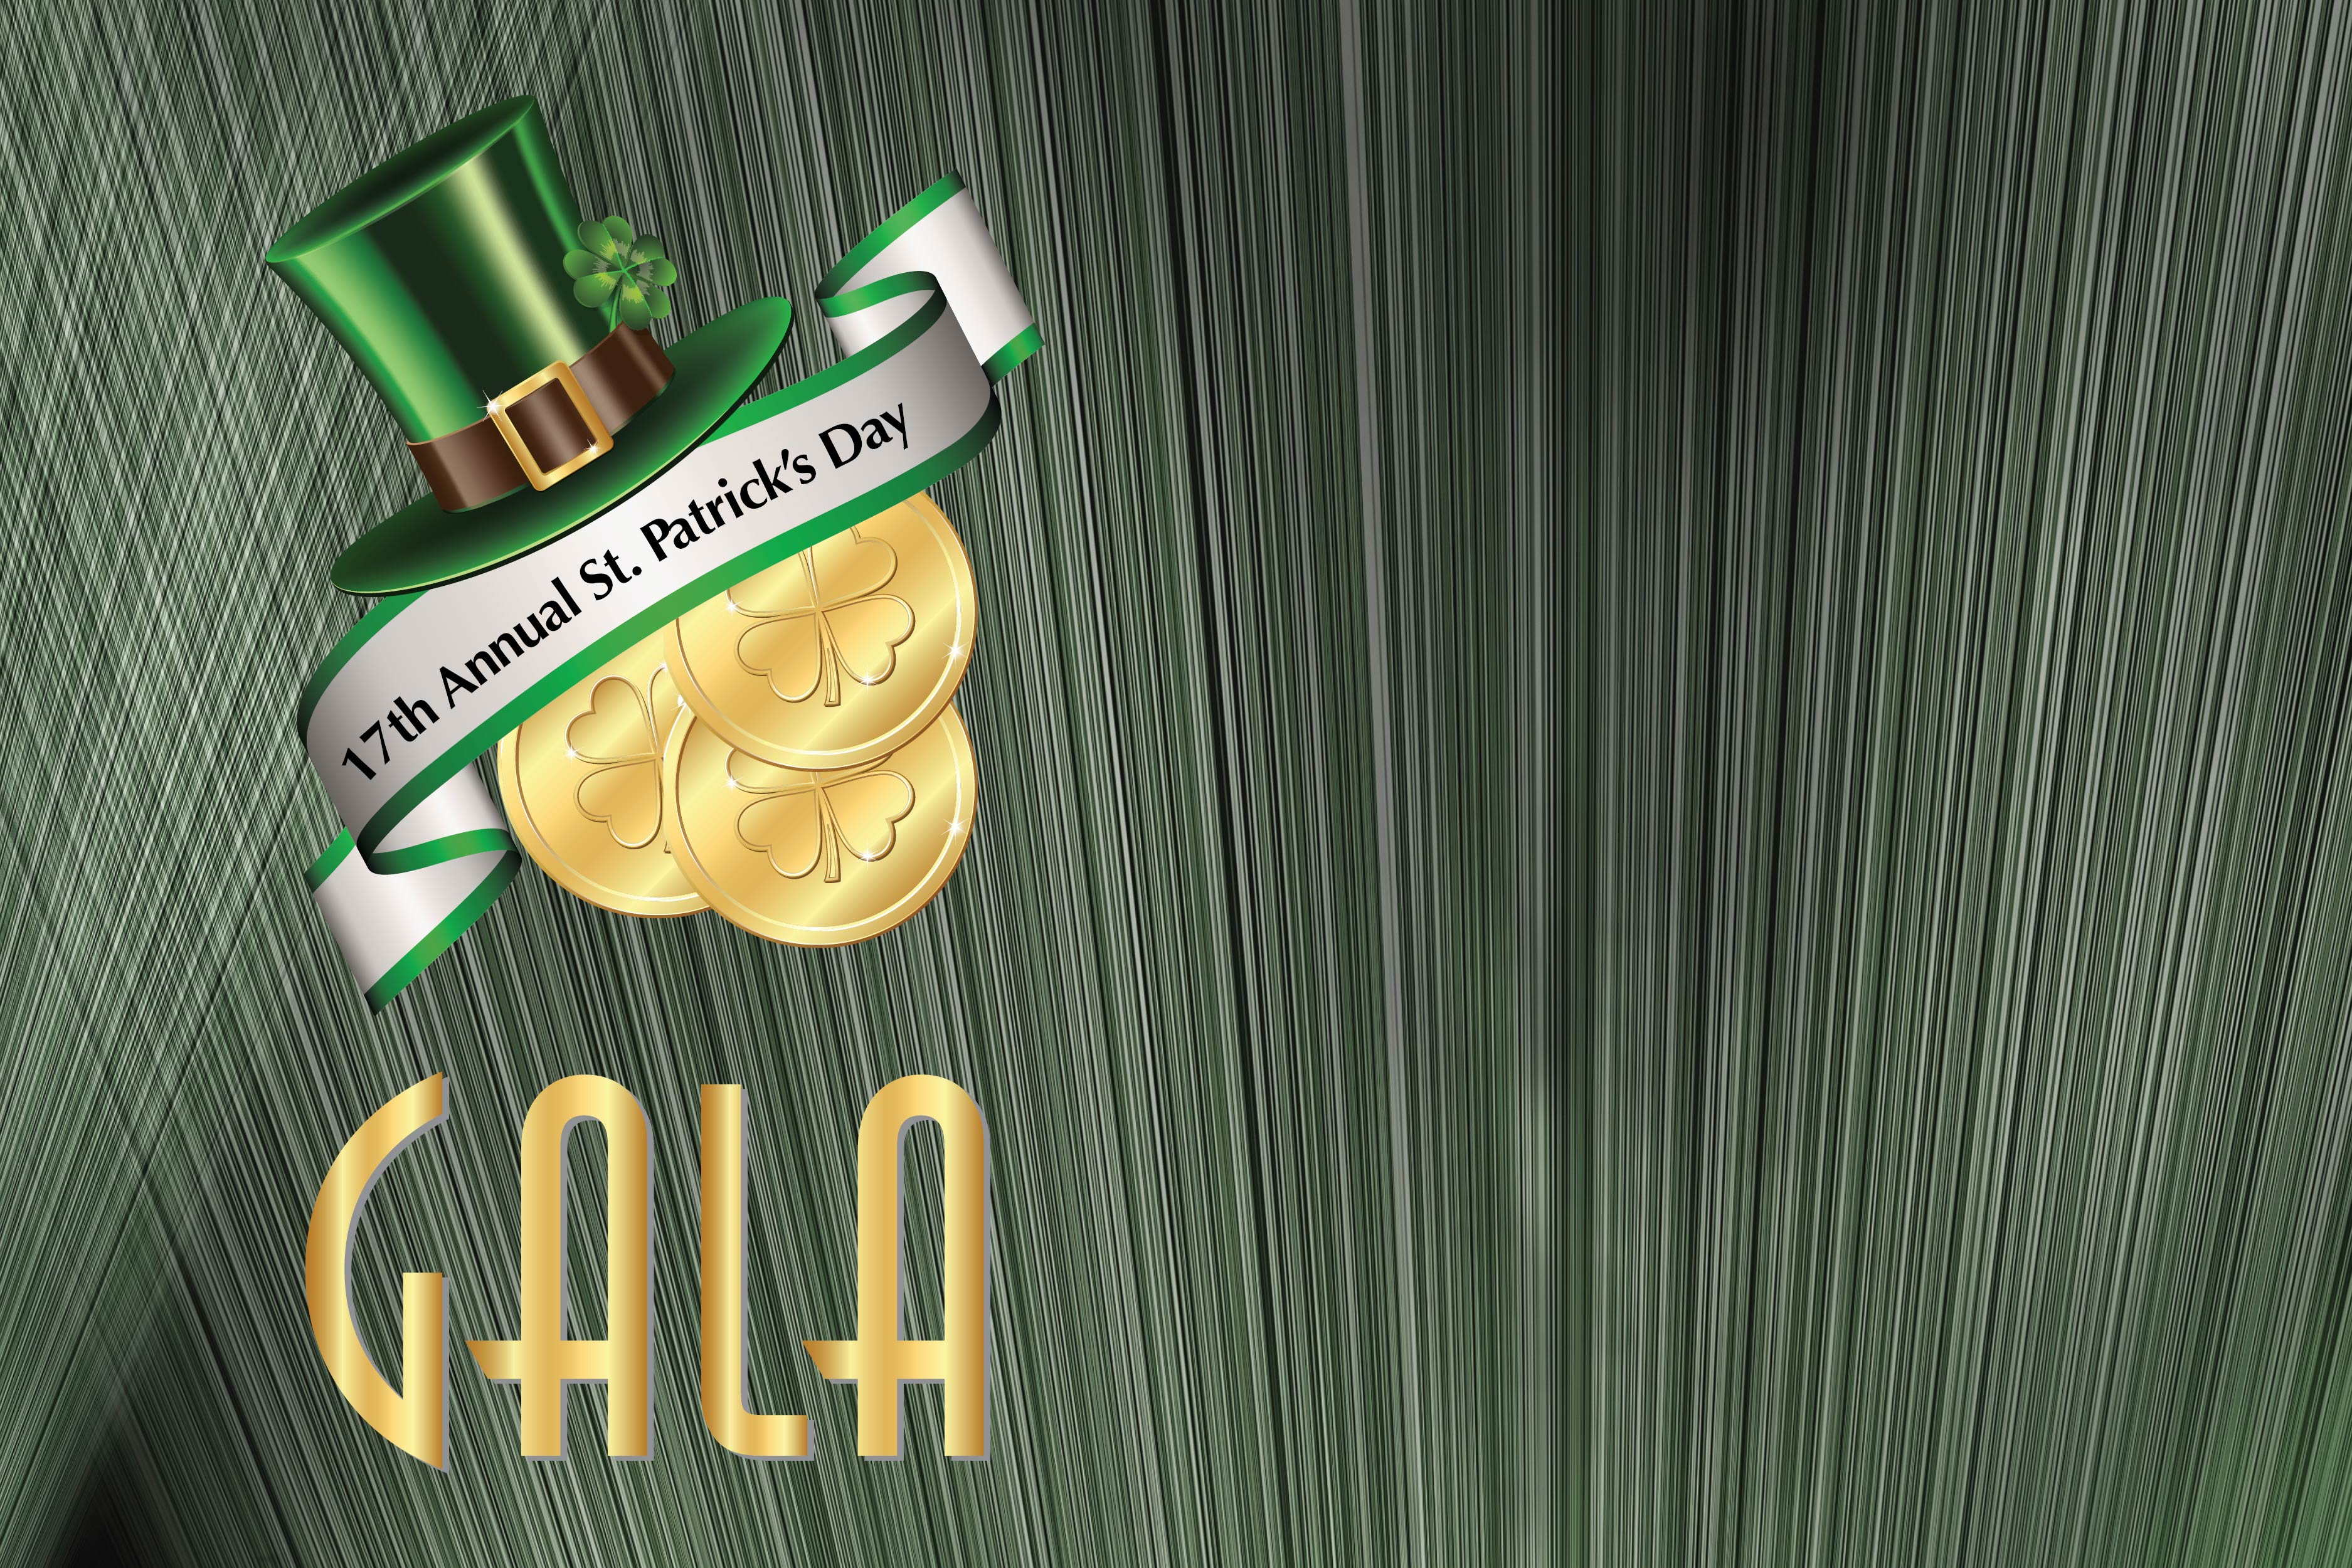 St. Pat's Gala Tickets Are Available!